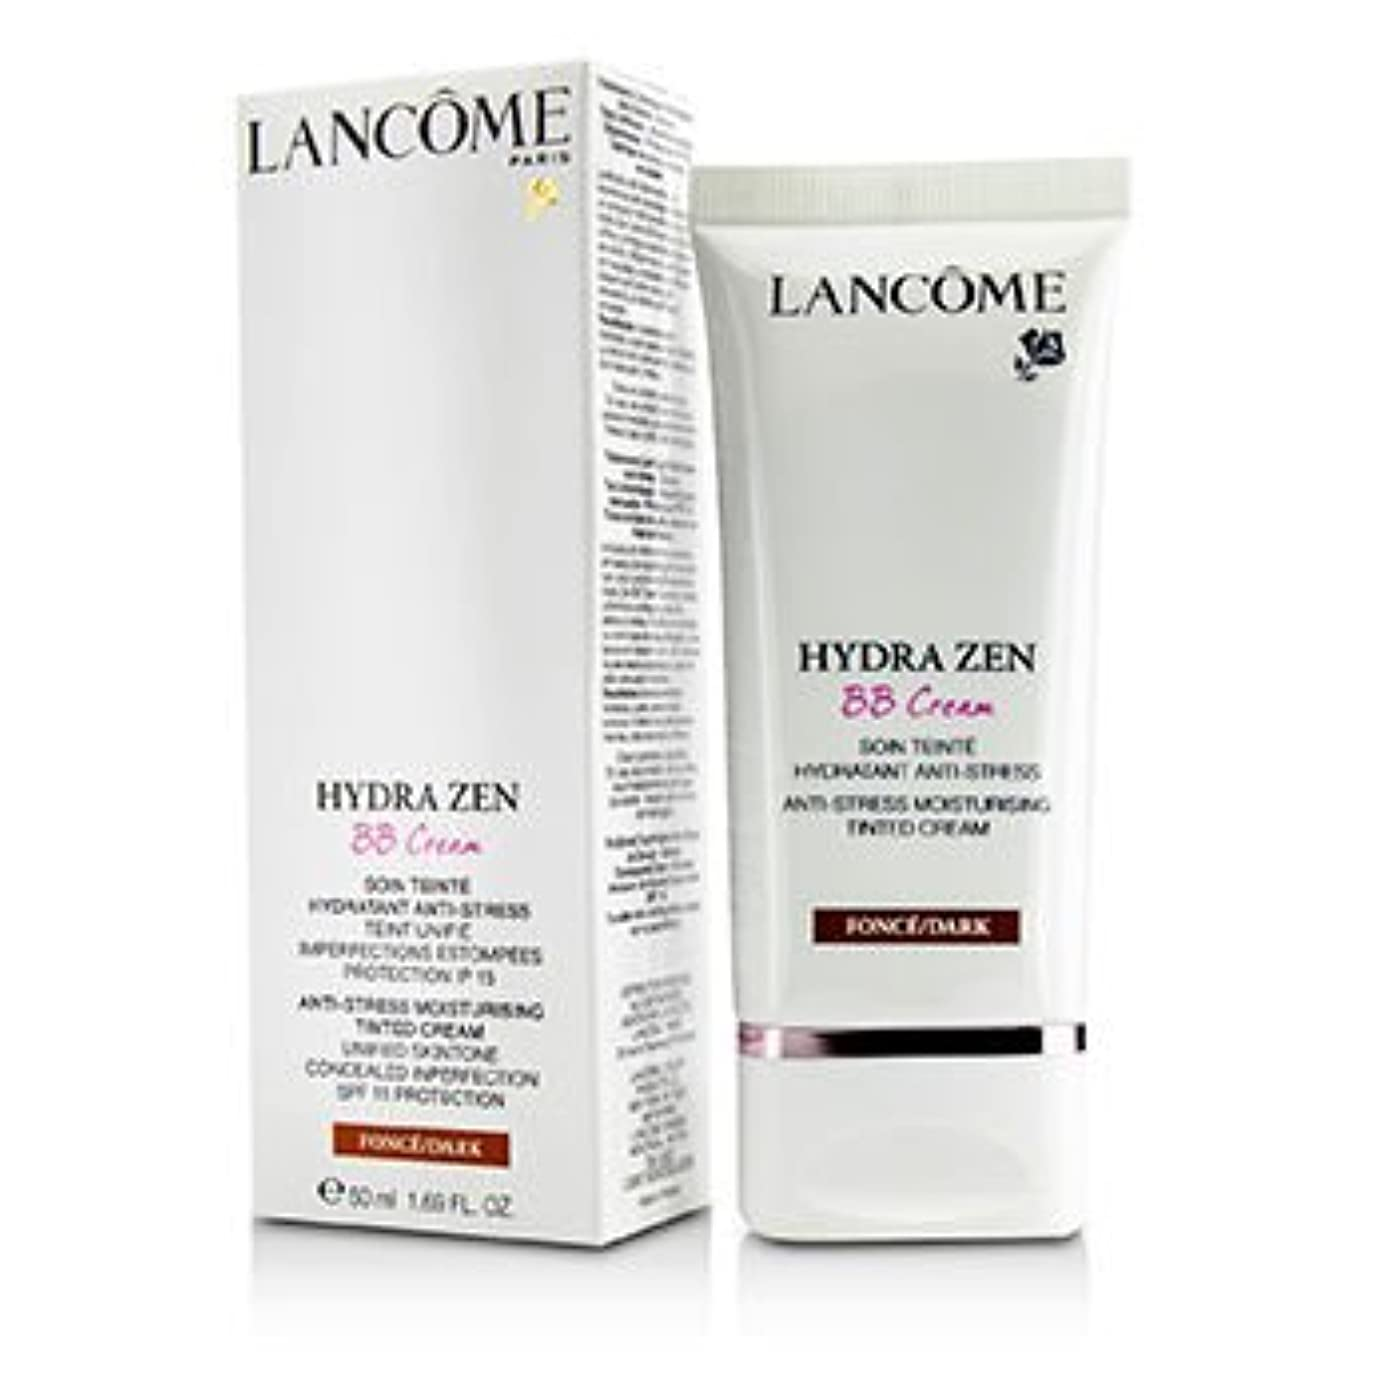 粒キャンパス半島[Lancome] Lancome Hydra Zen (BB Cream) Anti-Stress Moisturising Tinted Cream SPF 15 - # Dark 50ml/1.69oz